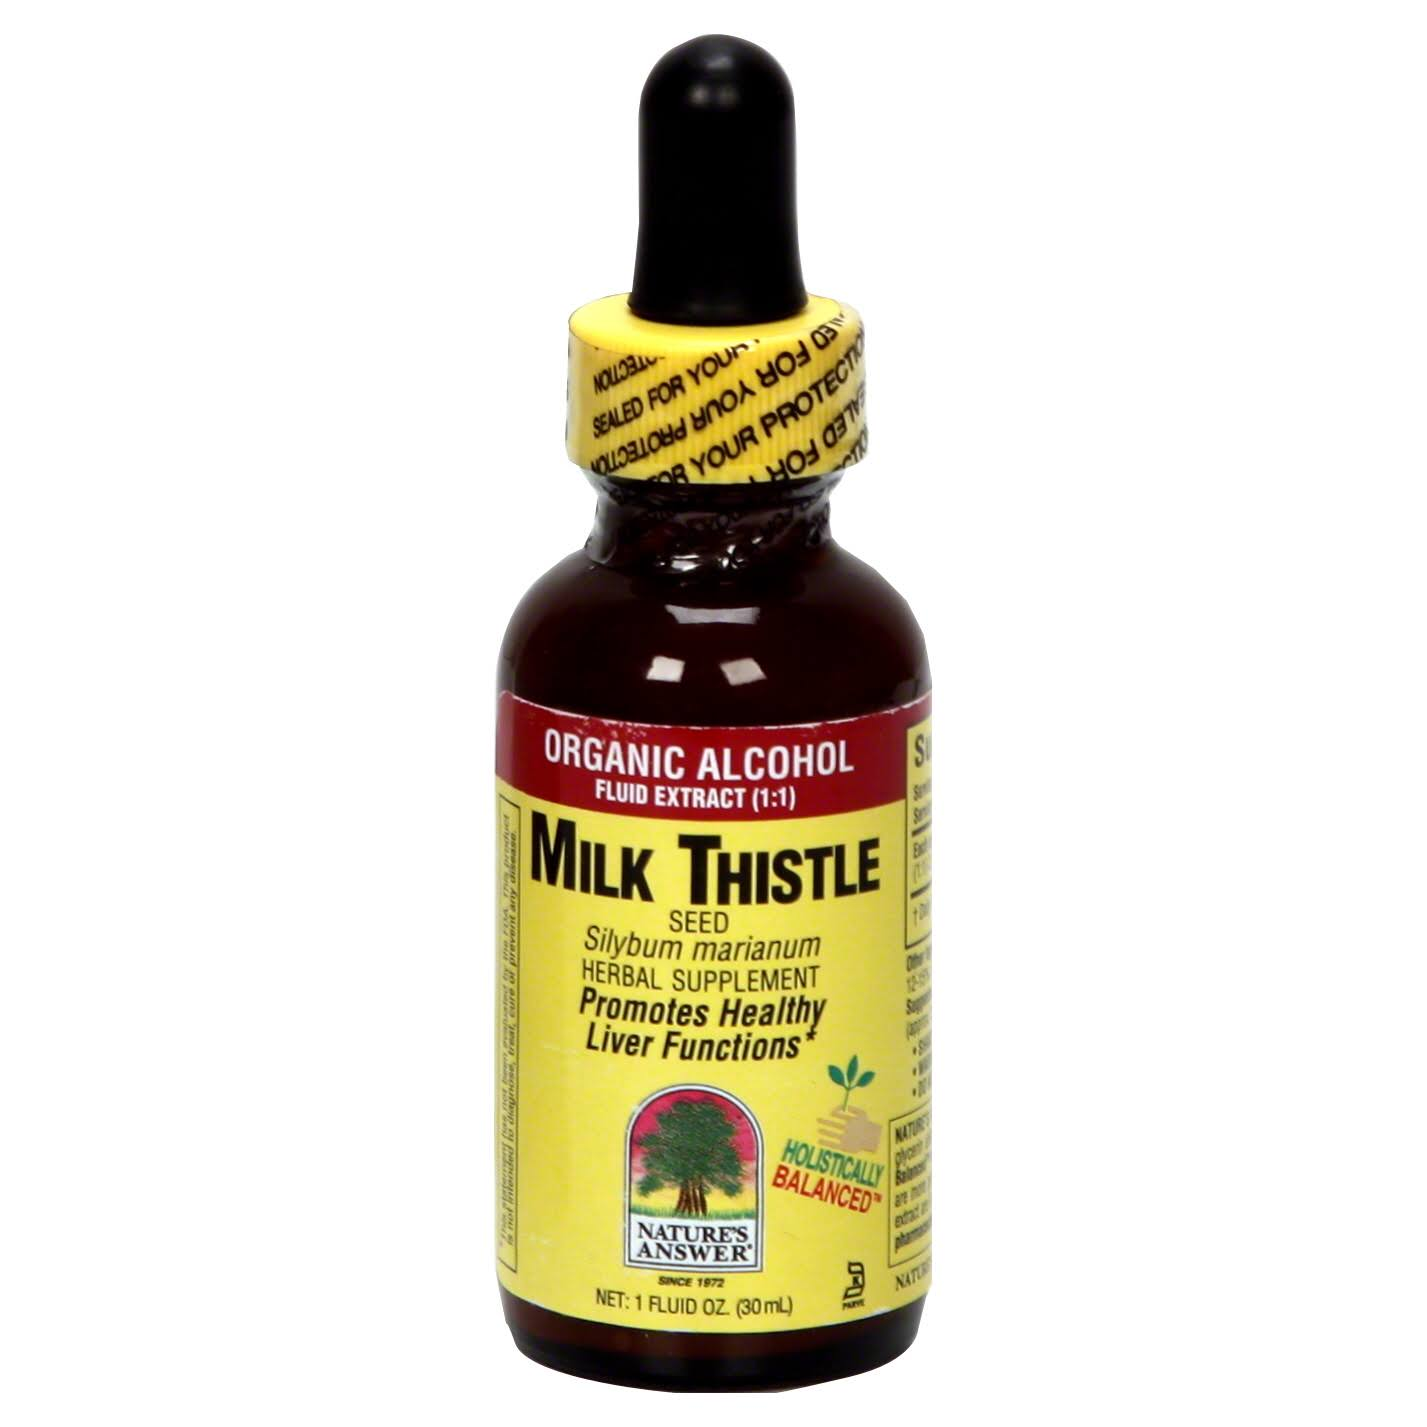 Nature's Answer Milk Thistle Seed, Organic Alcohol, Fluid Extract (1:1) - 1 fl oz